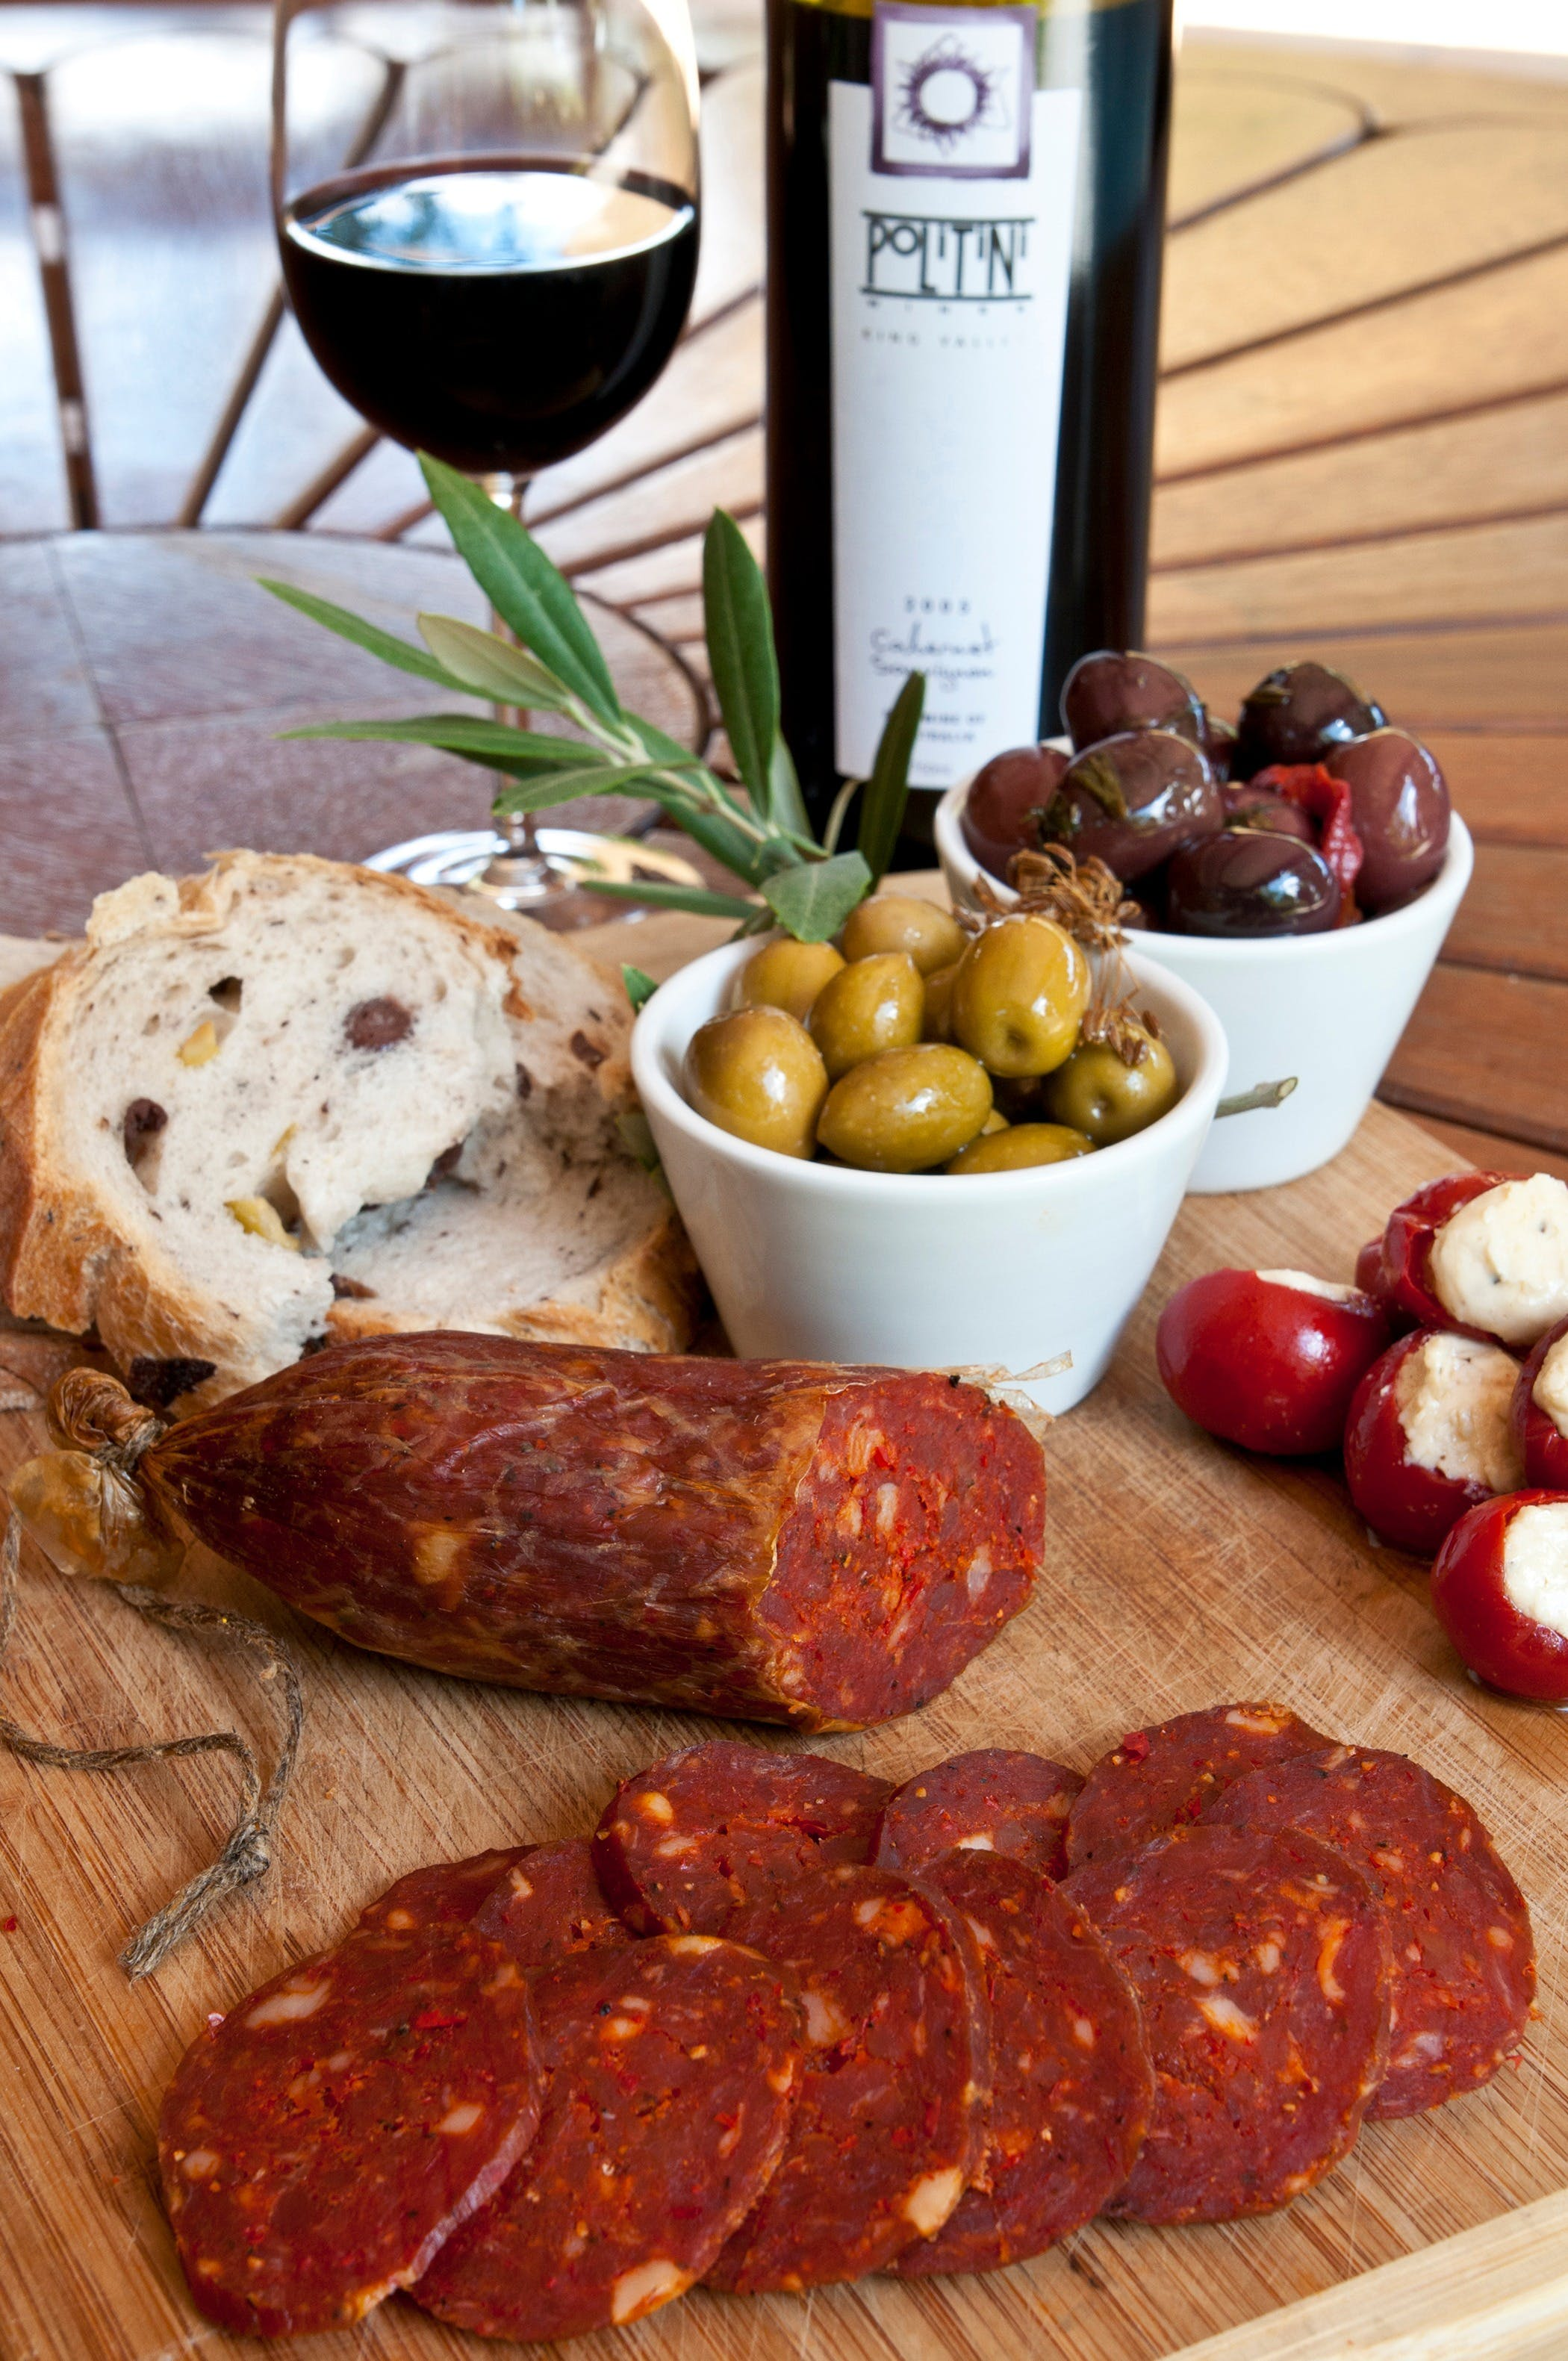 Salami and Salsicce Making classes at Politini Wines - Accommodation in Surfers Paradise